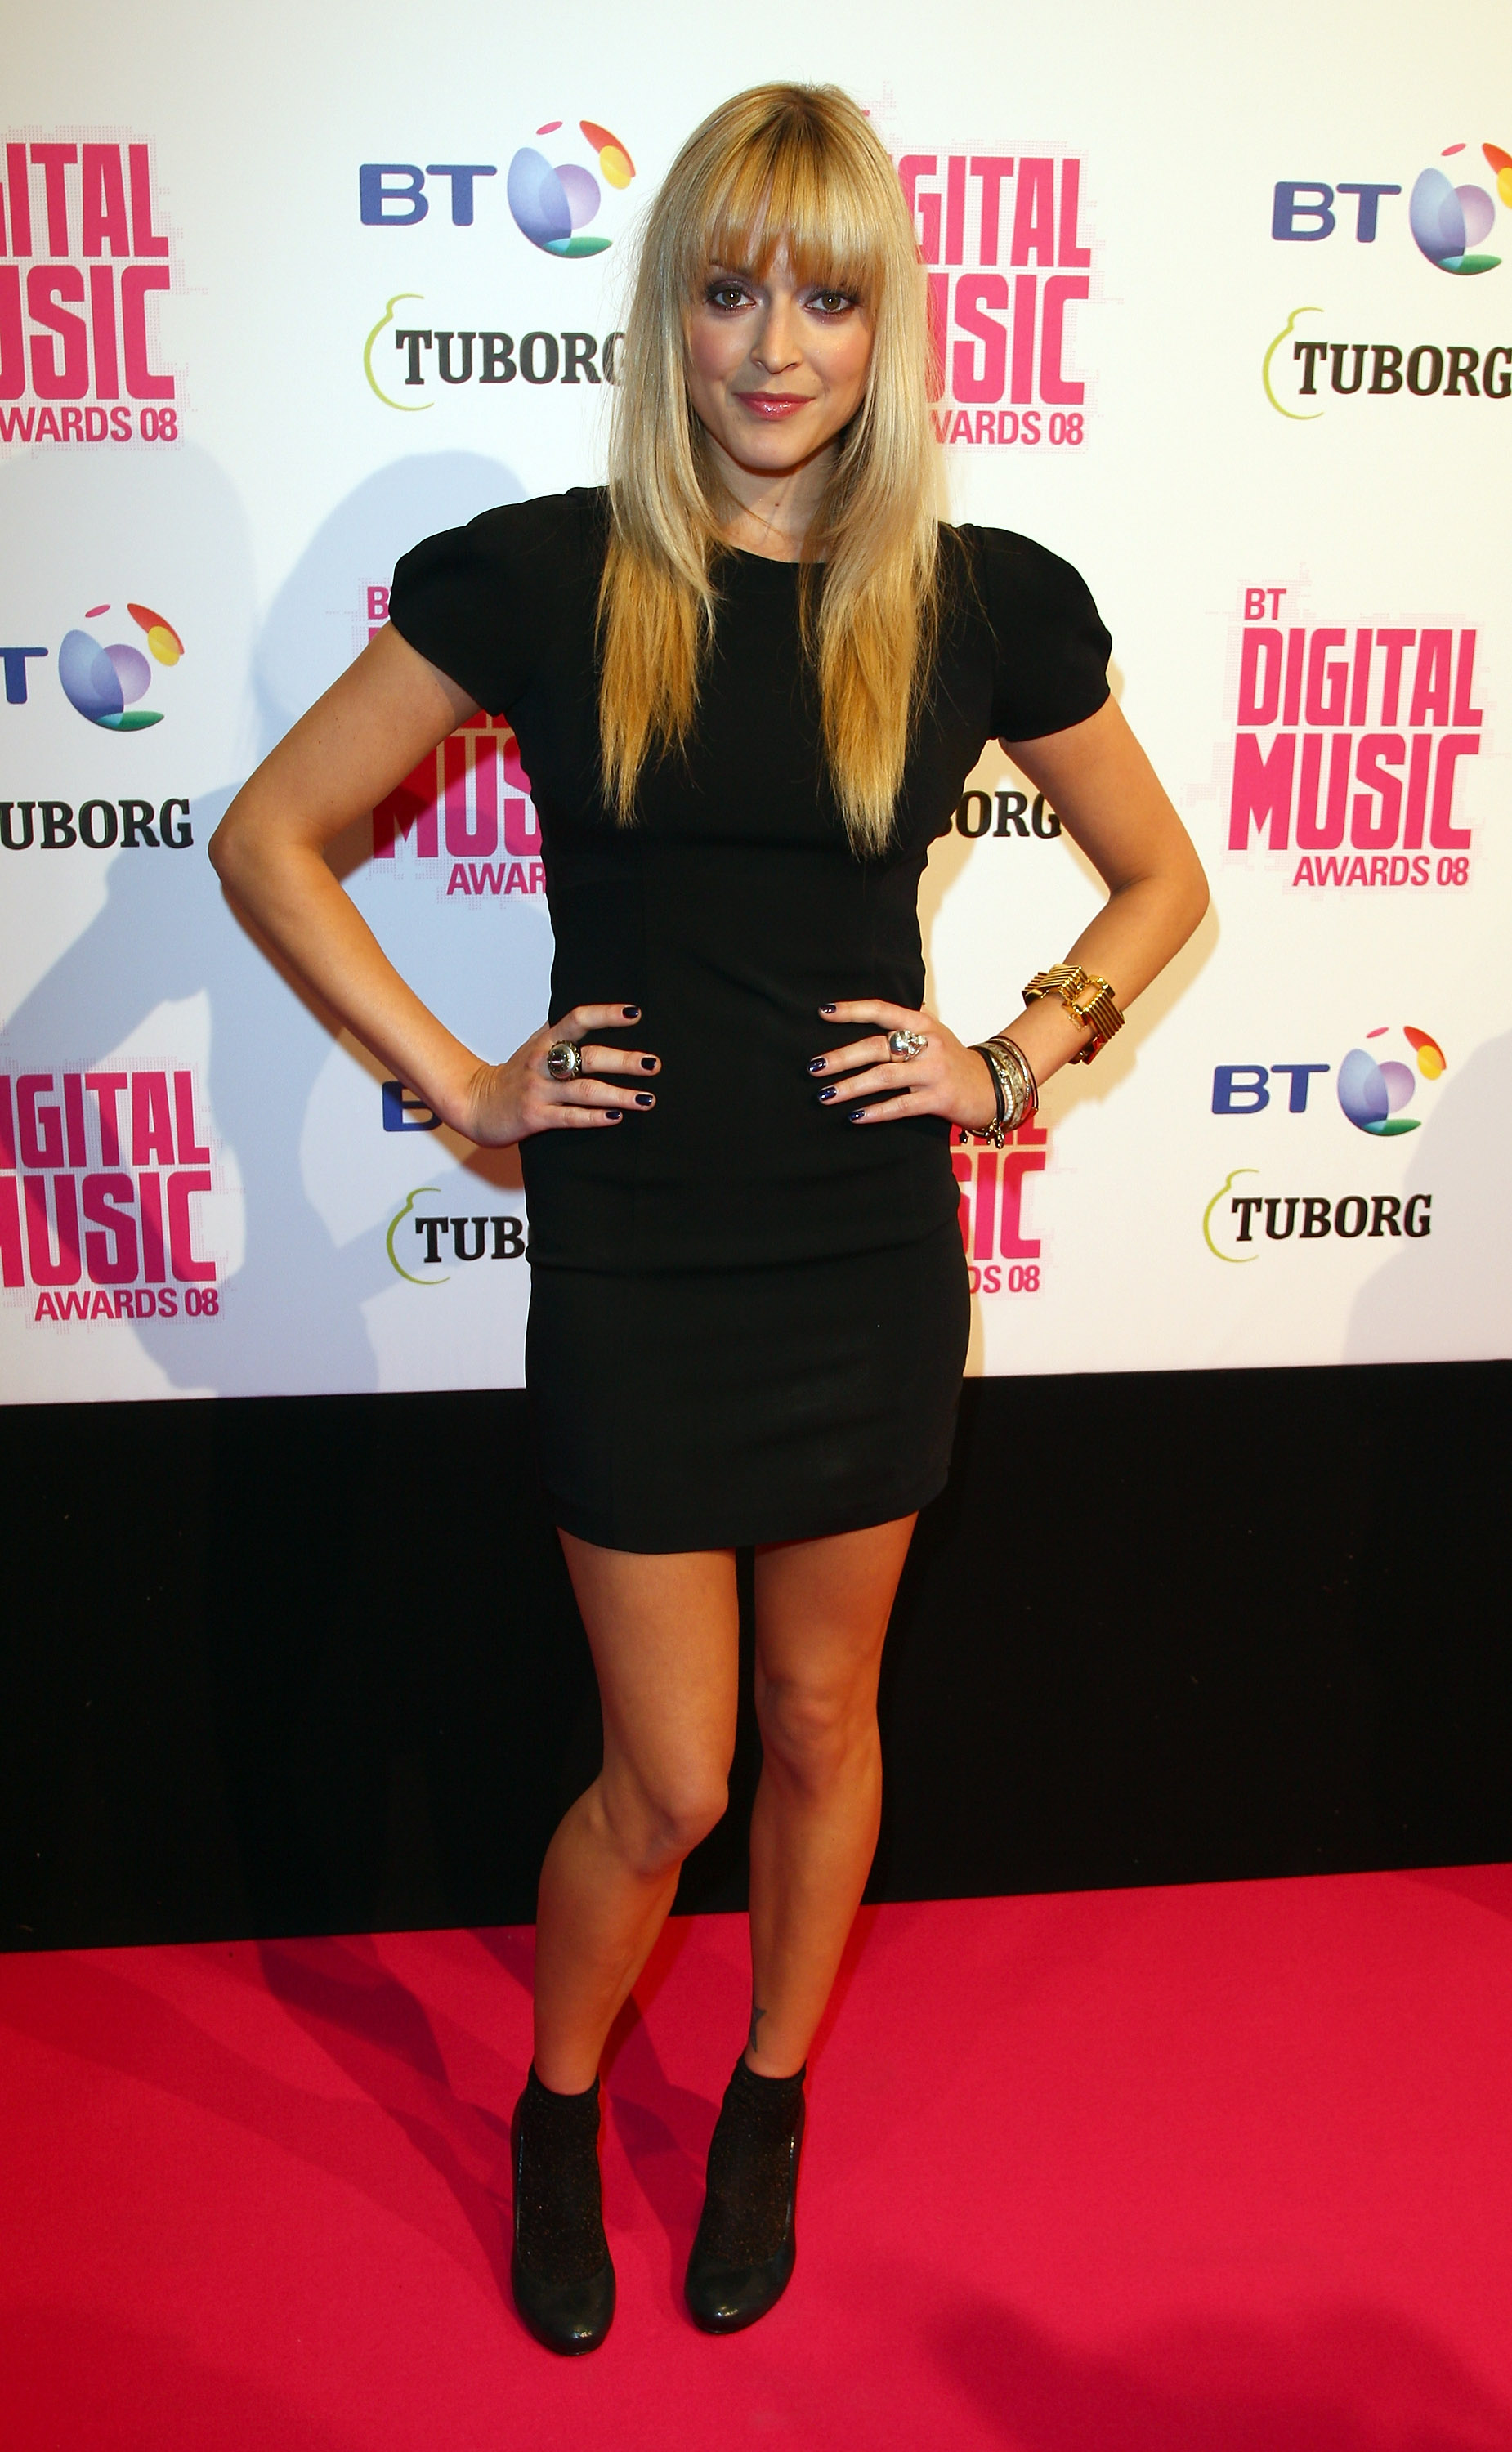 02274_Celebutopia-Fearne_Cotton_arrives_at_the_BT_Digital_Music_Awards_2008-07_122_1102lo.jpg